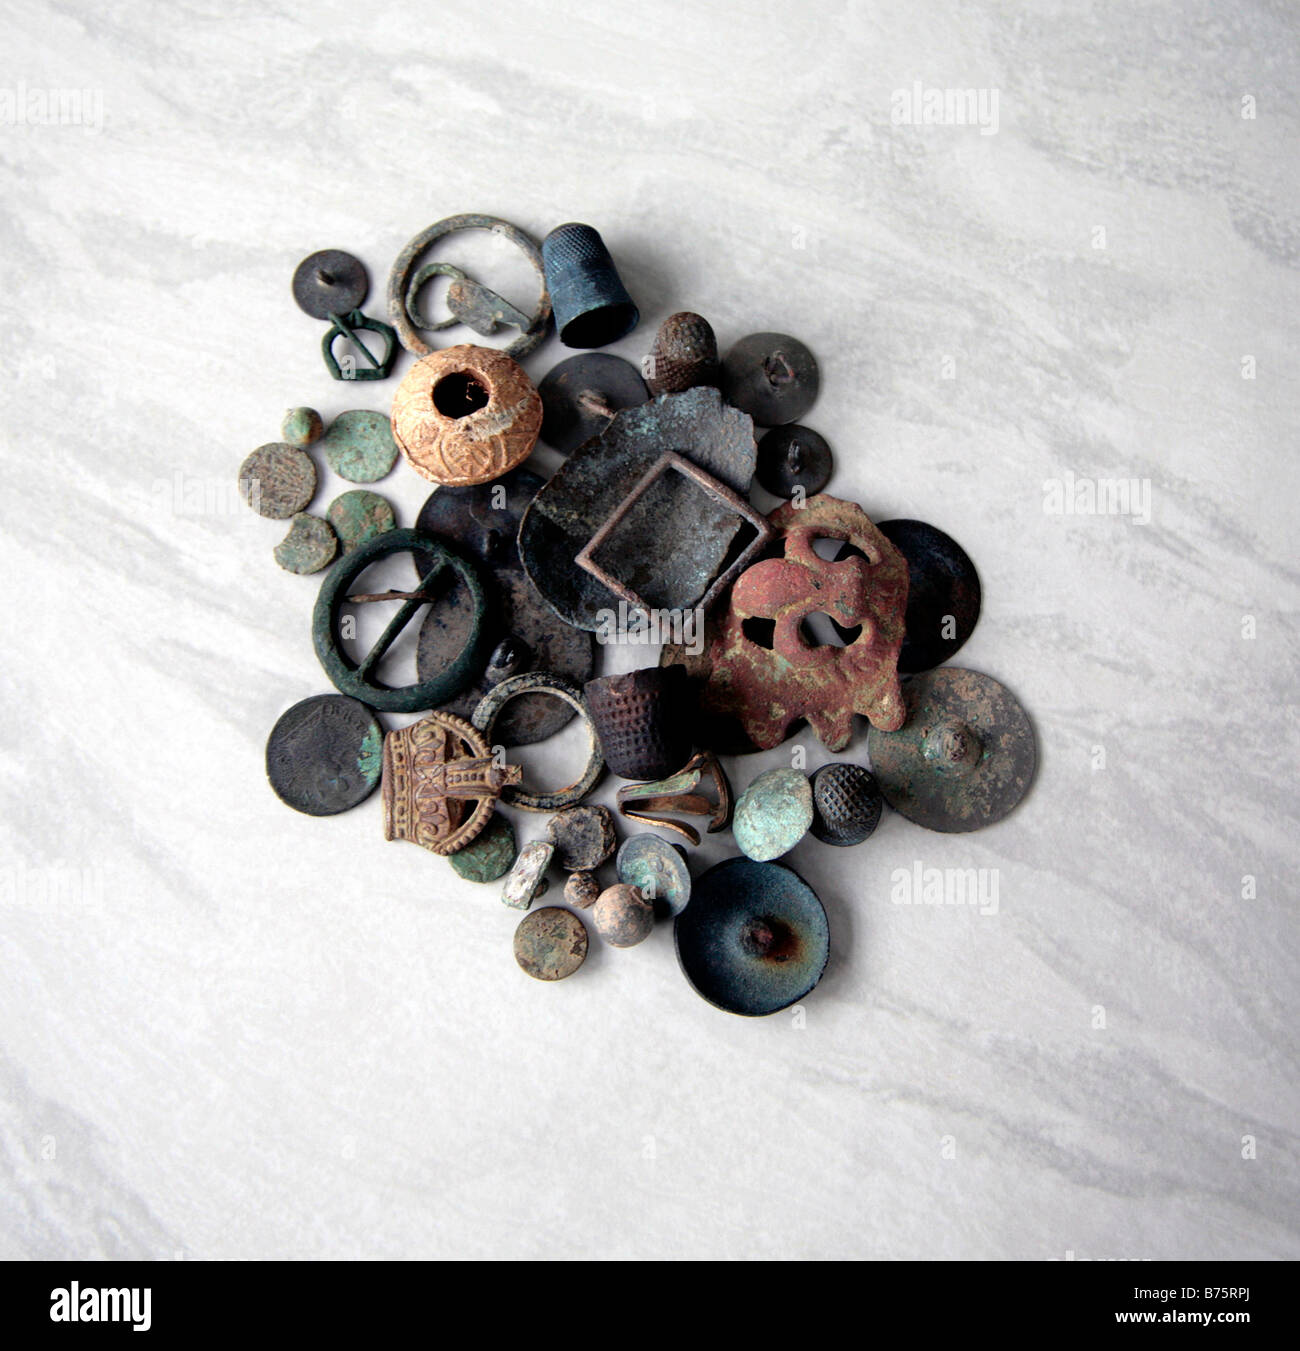 Jew Detector: Metal Detector Finds Stock Photo, Royalty Free Image